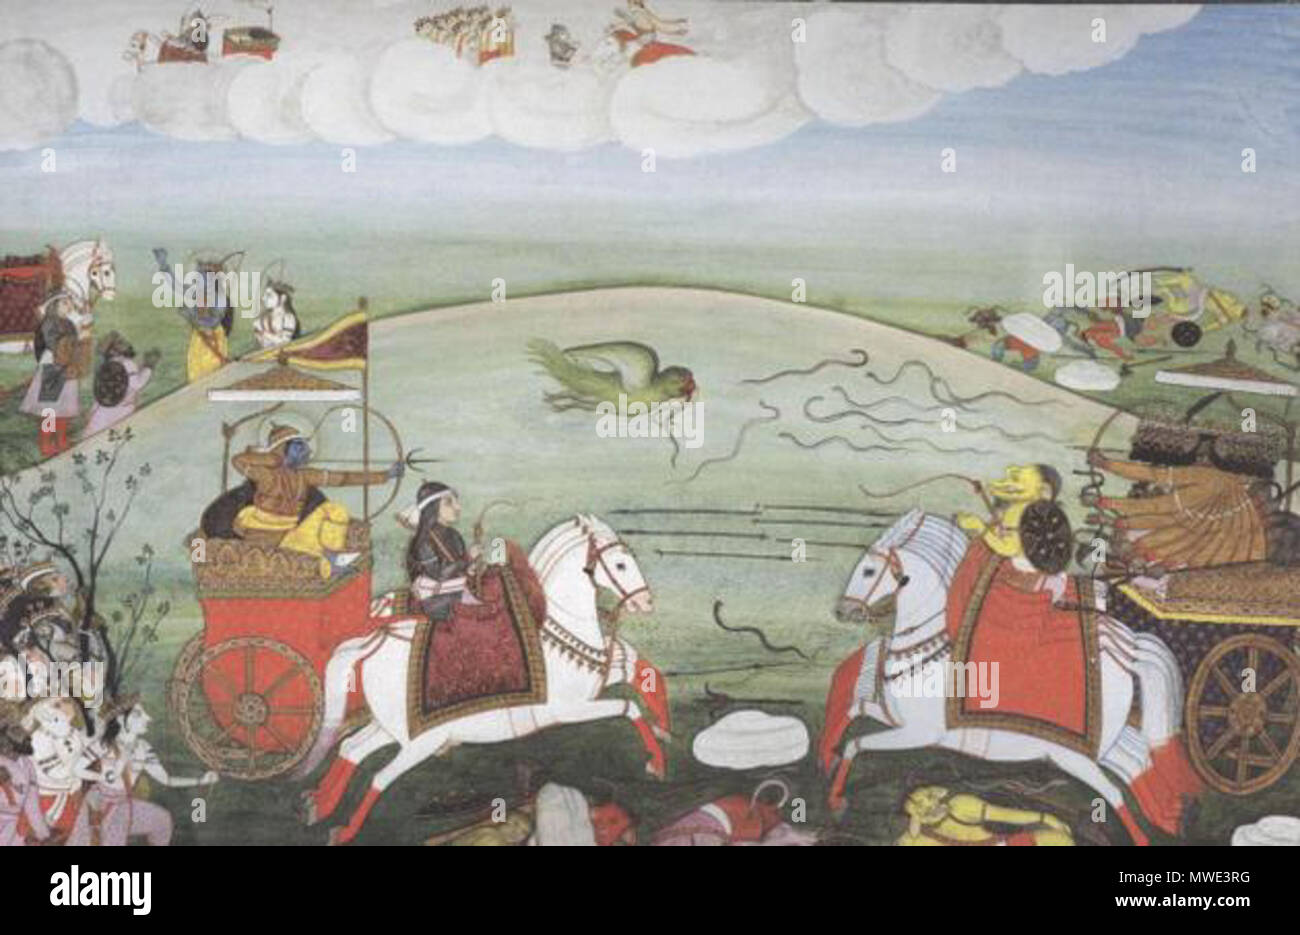 . English: What people don't recognise is that the story of Ram, what we call the Ram Katha, extends over a huge historical period.' Photo: Valmiki Ramayana, illustrated with Indian miniatures from the 16th to the 19th century, edited and published by Diana De Selliers . from the 16th to the 19th century. Unknown 208 Fight between Rama and Ravana Stock Photo